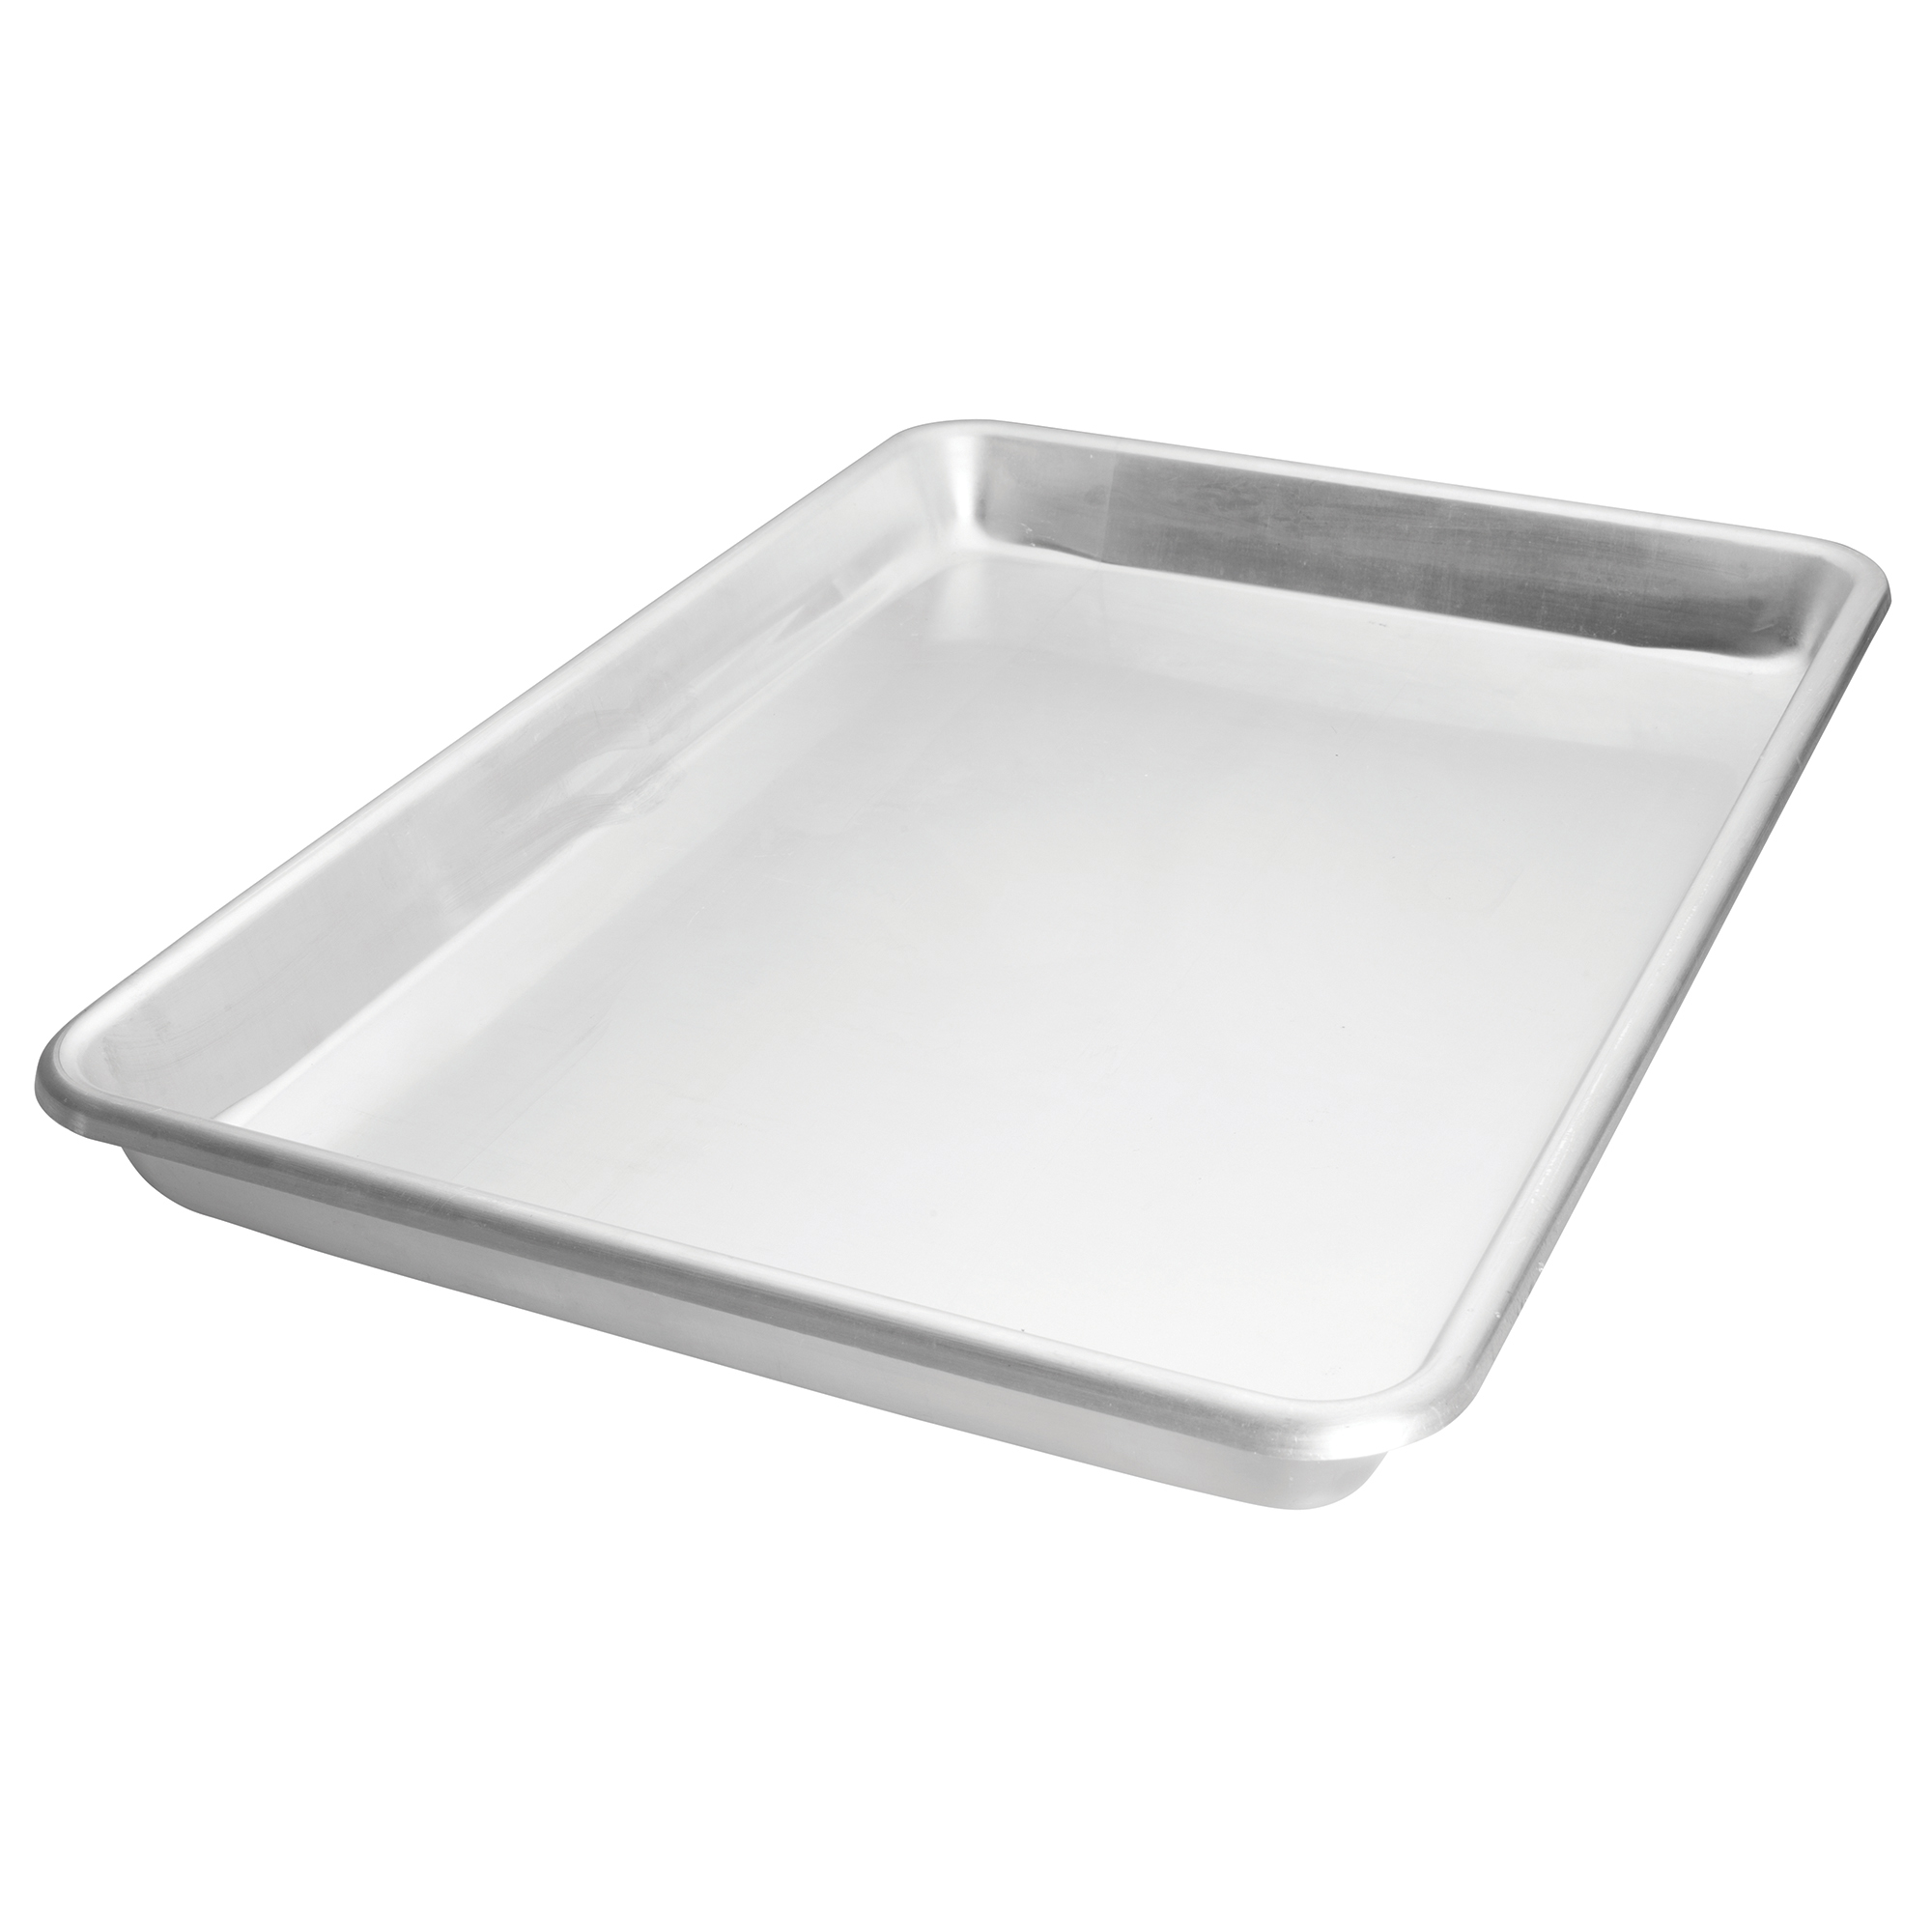 Winco ALRP-1826 roasting pan